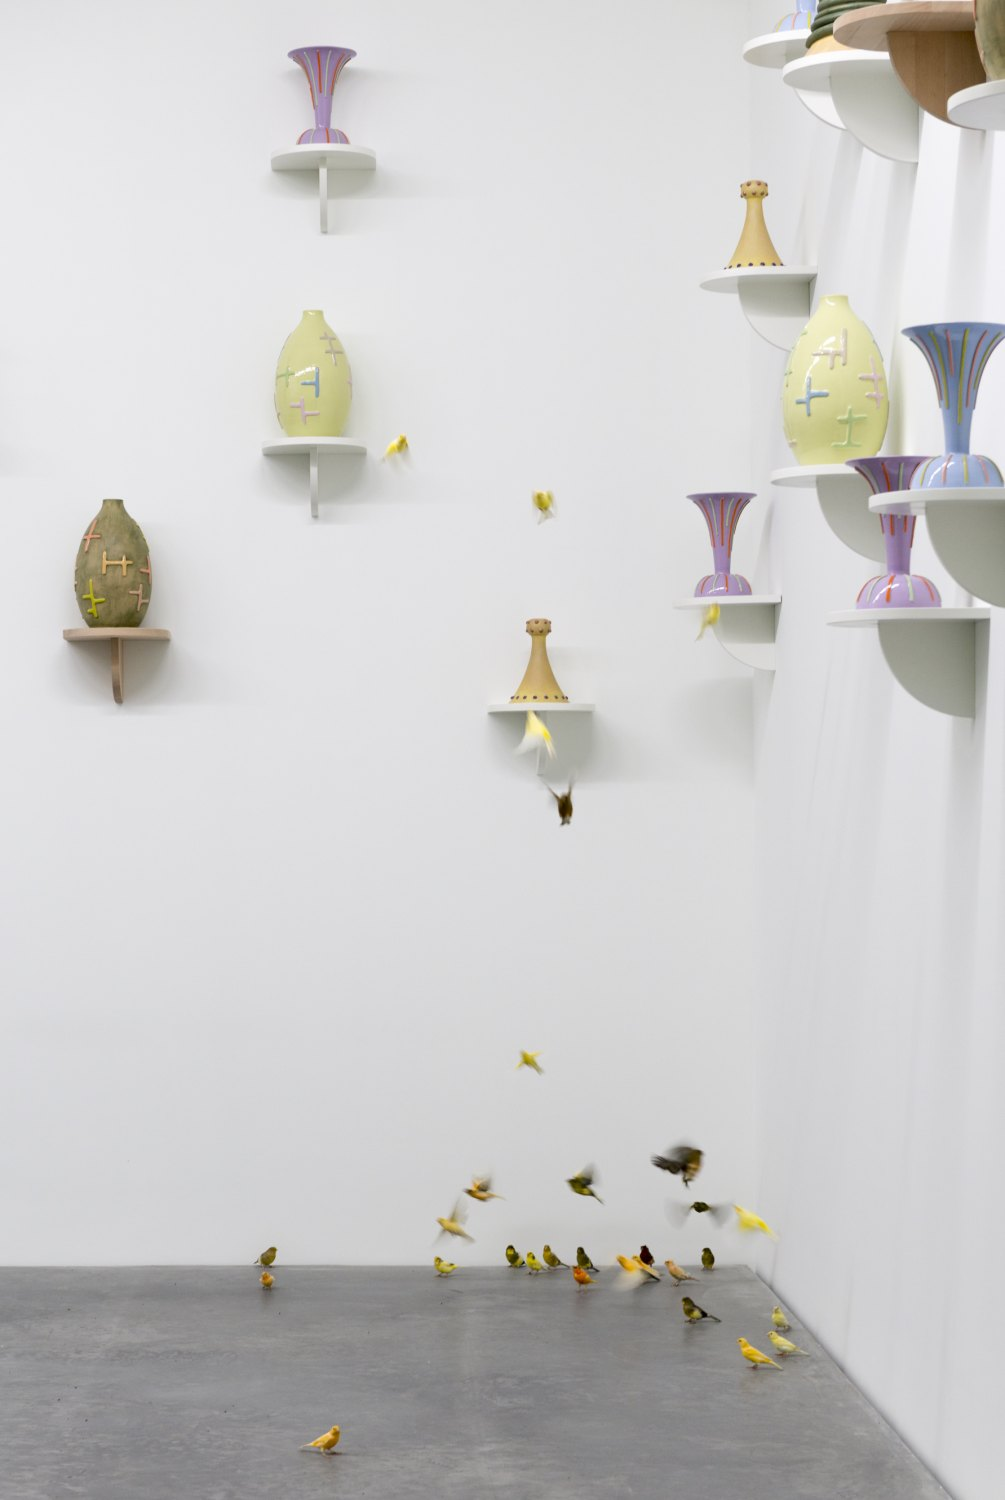 Marc Camille Chaimowicz, Forty and Forty Installation view, Galerie Neu, Berlin 2014